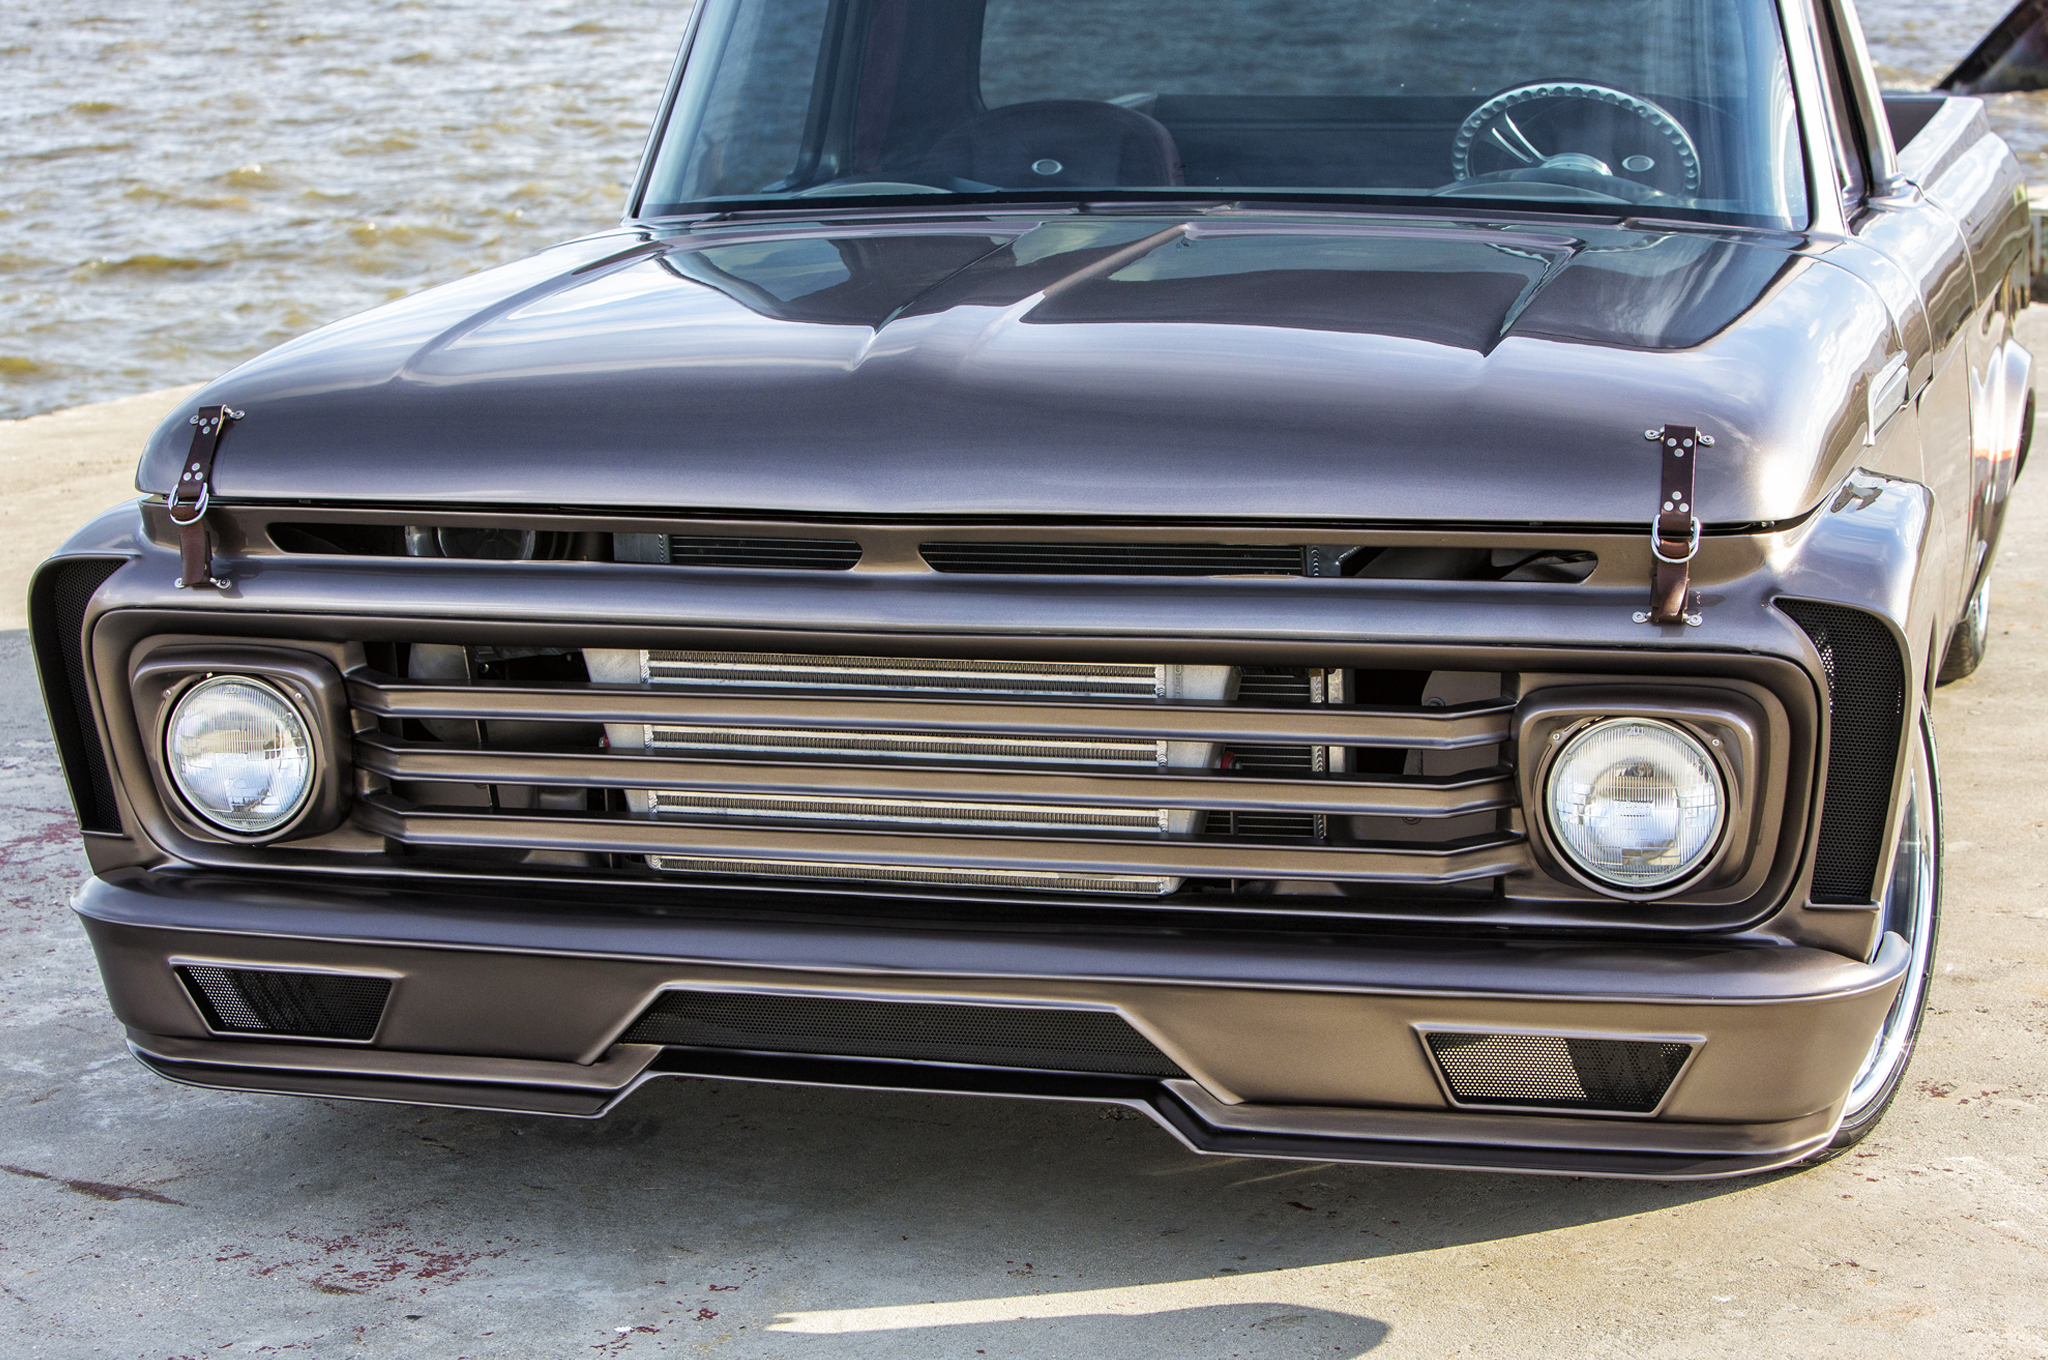 The custom triple-bar grille is reminiscent of a late-model F-150 and the custom bumper uses trapezoidal openings that match the rear.